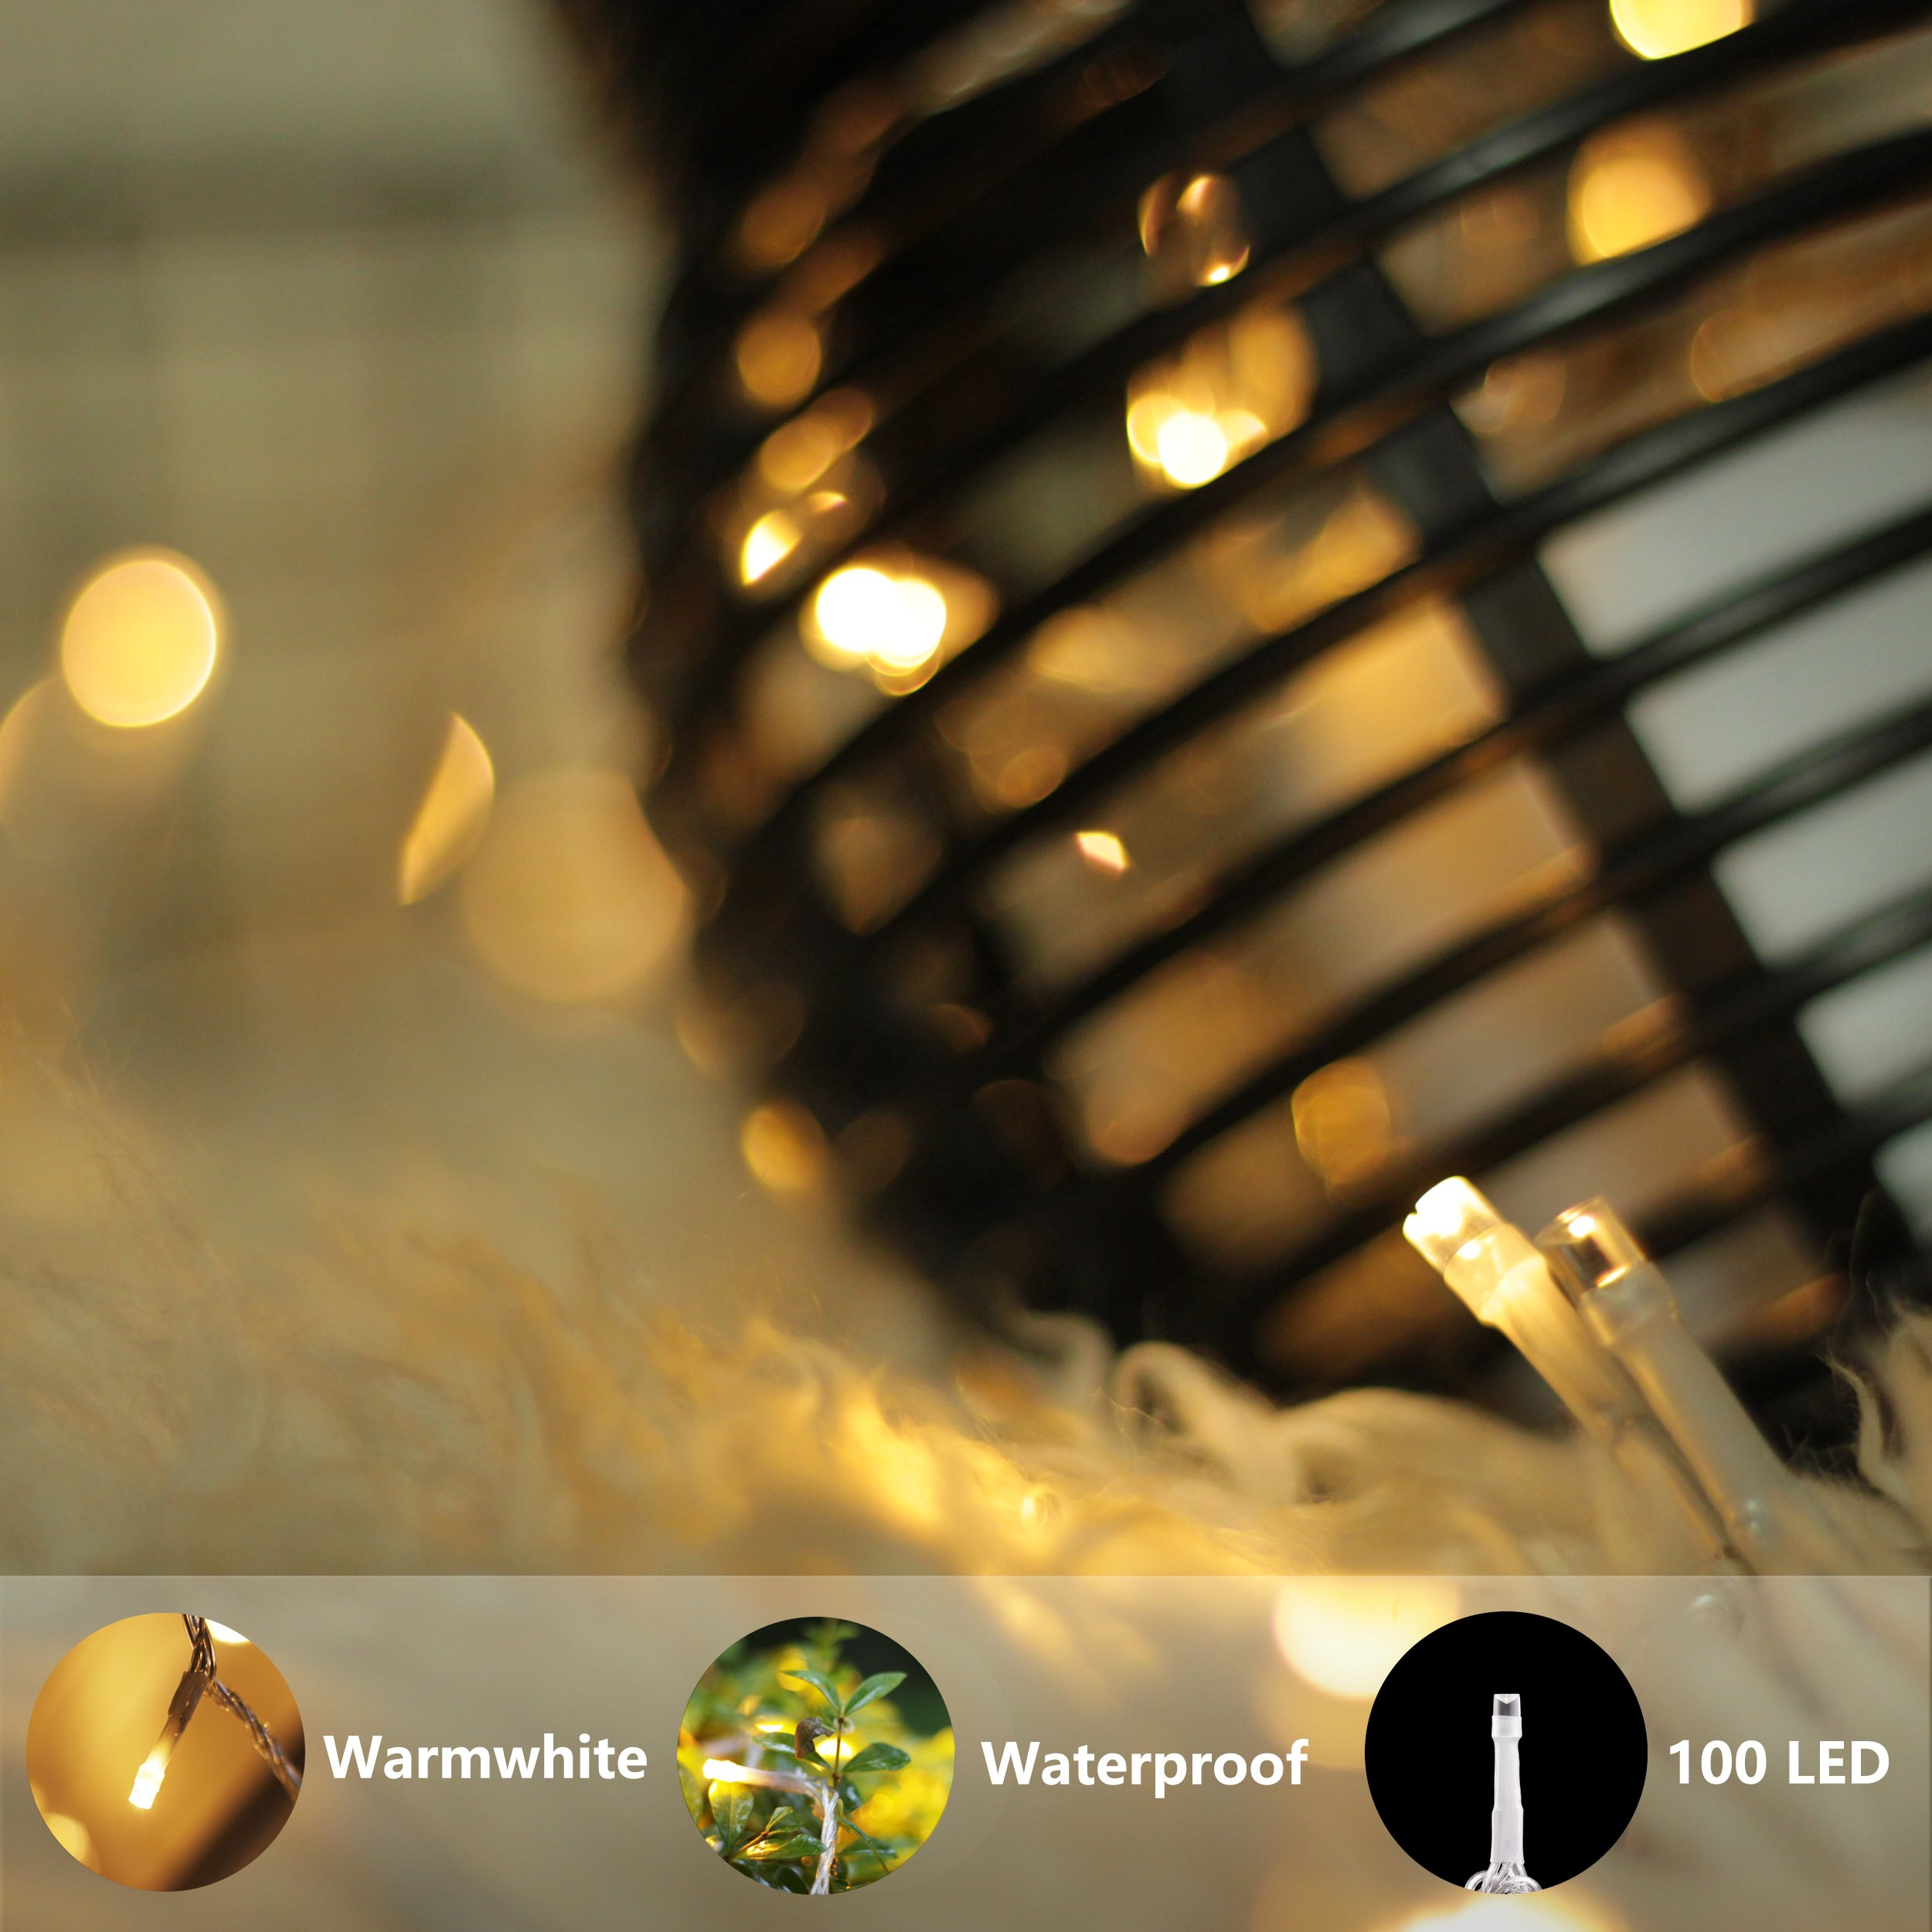 LouisChoice Extension Set of myCozyLite LED String Lights, 33 Ft, 100 LED, Waterproof with Male and Female Plug, Indoor & Outdoor Use (Transformer NOT Included) by LouisChoice (Image #3)